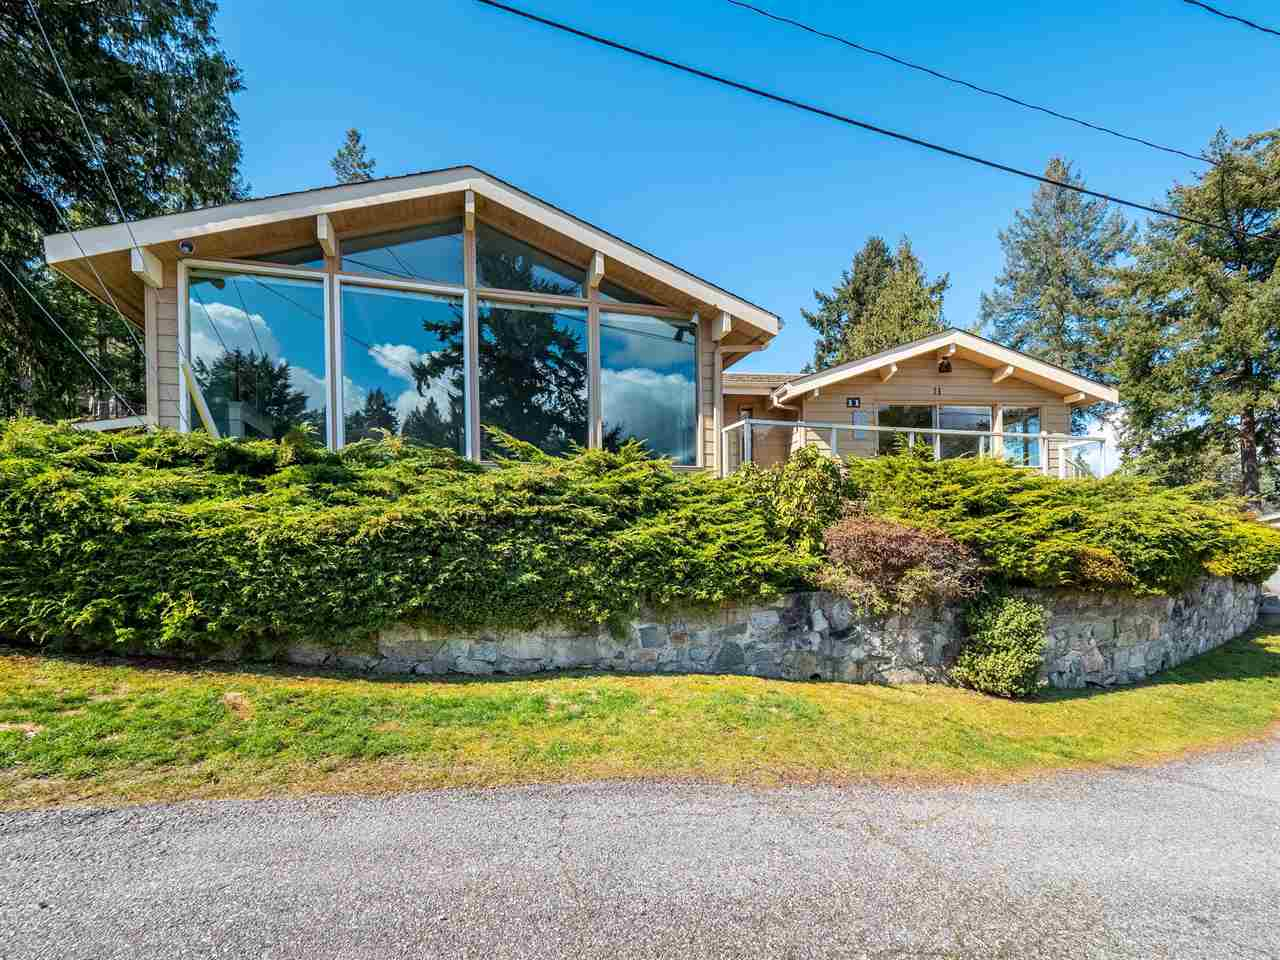 11 4995 GONZALES ROAD - Pender Harbour Egmont House/Single Family for sale, 2 Bedrooms (R2447947) - #1